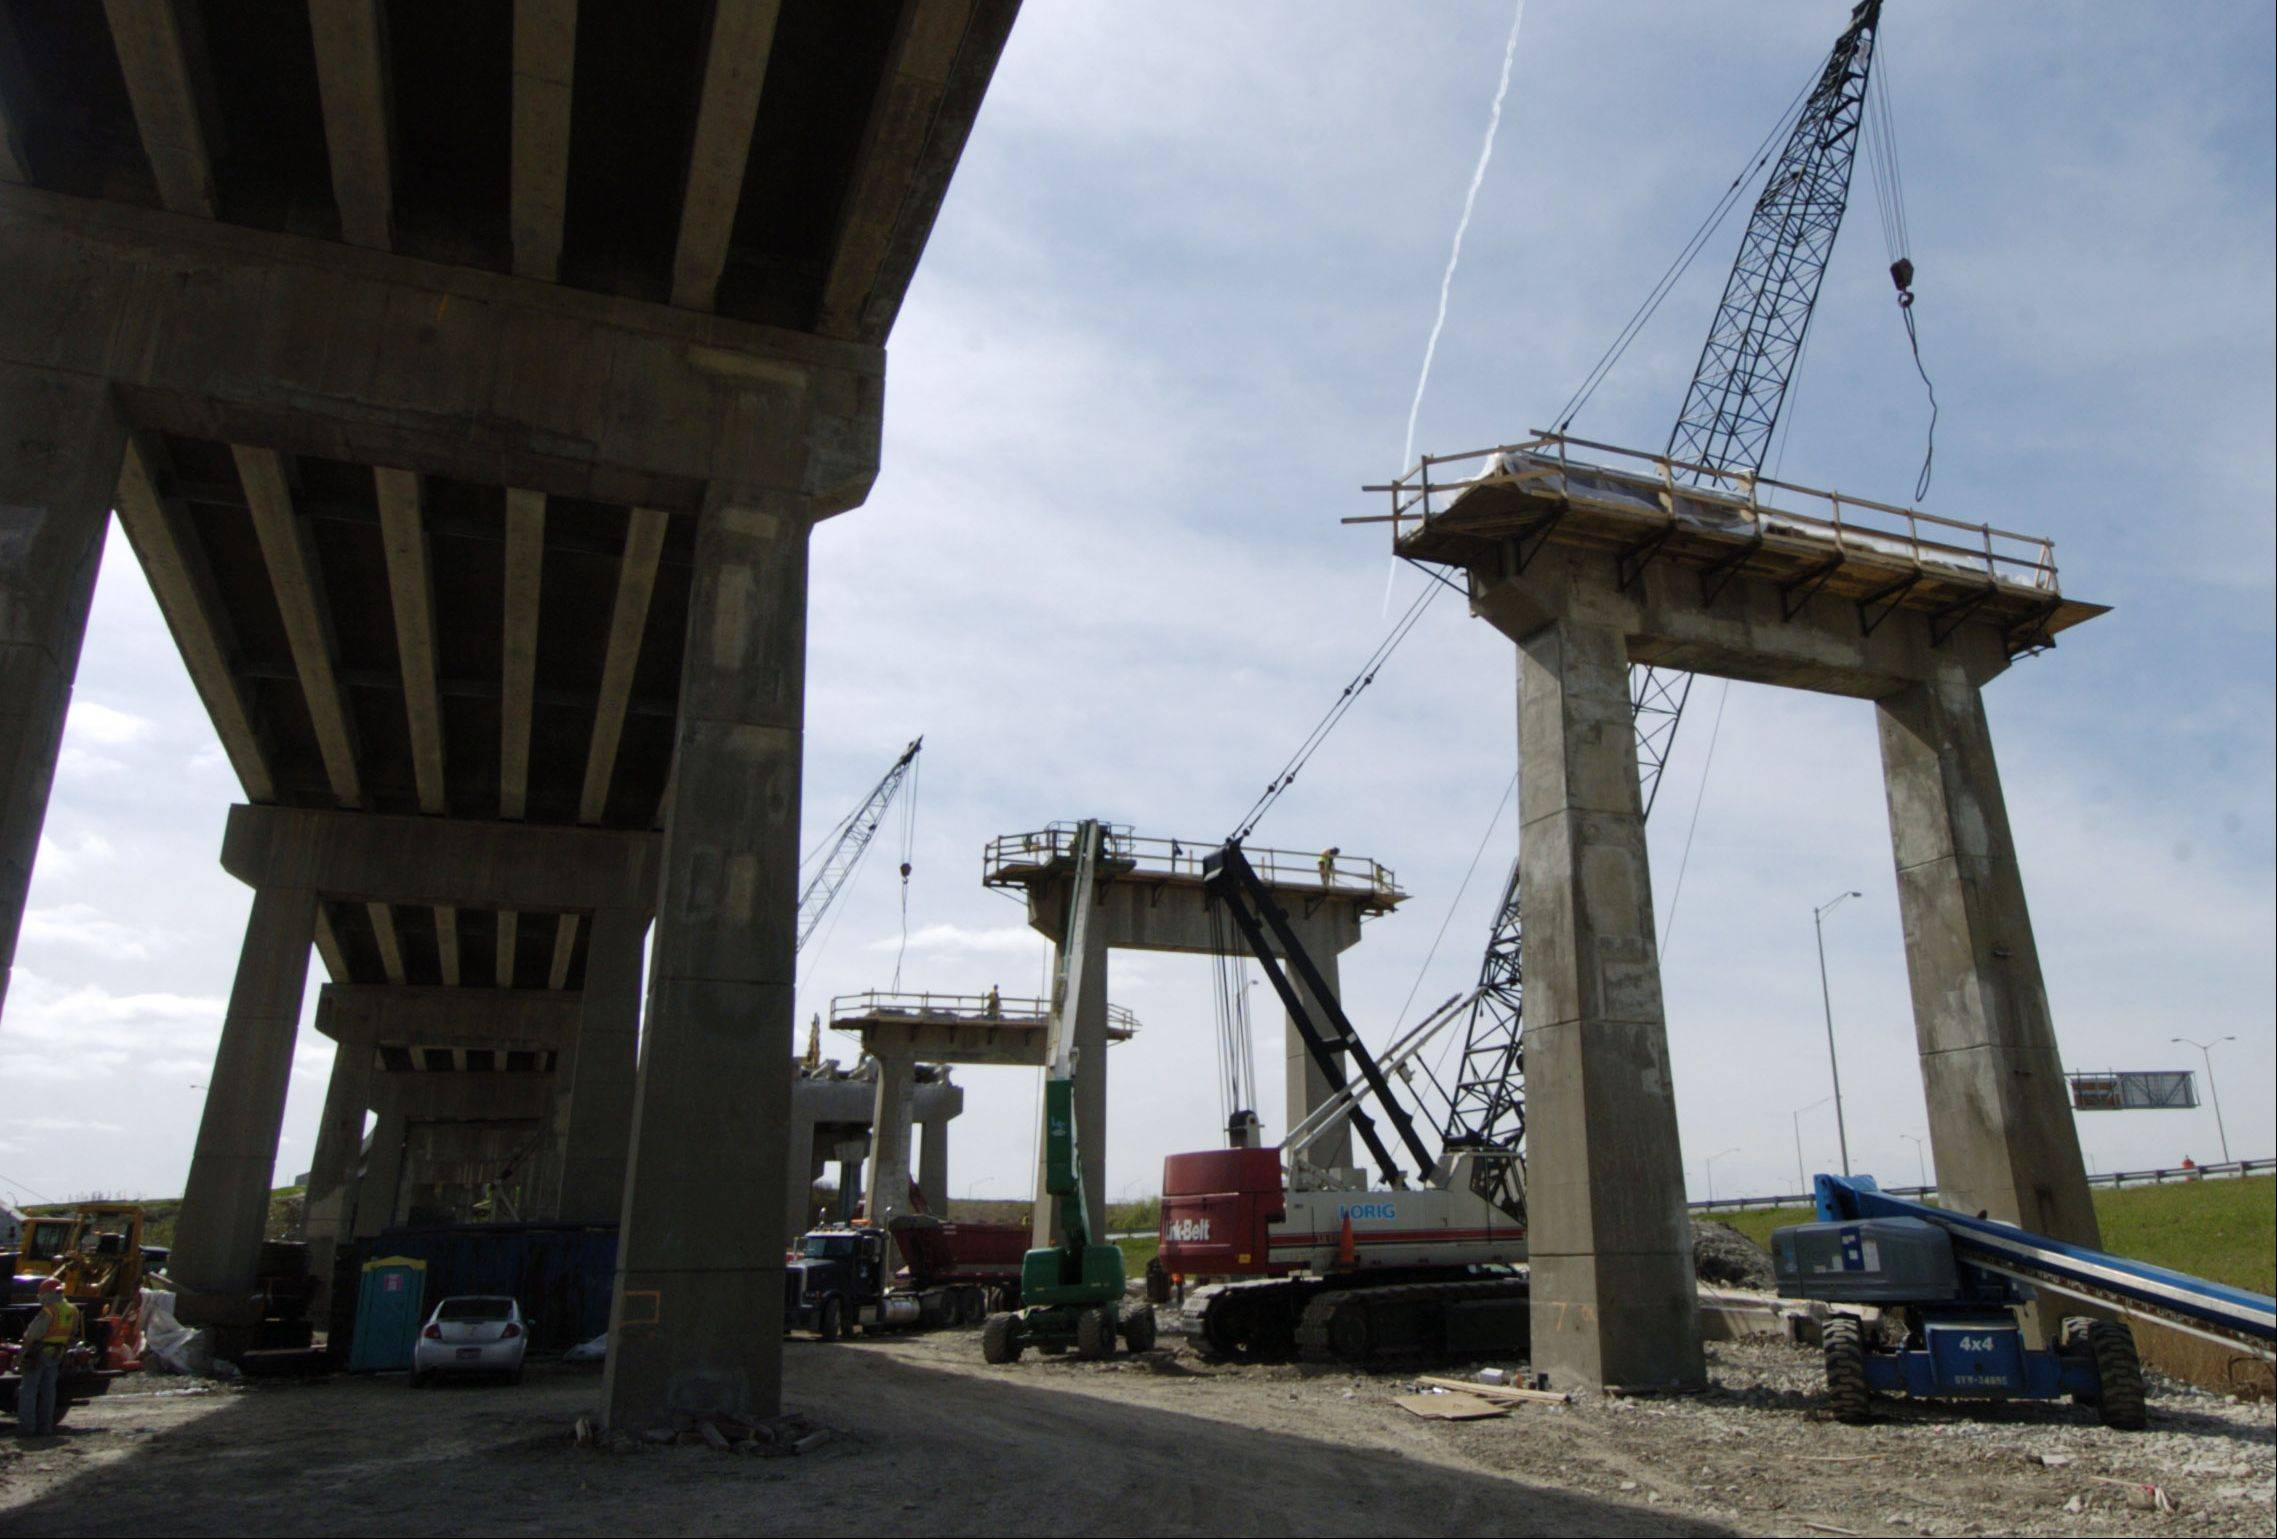 The deck of the existing tri-level bridge connecting northbound I-294 to westbound I-90, right, is being removed during reconstruction of the roadway.